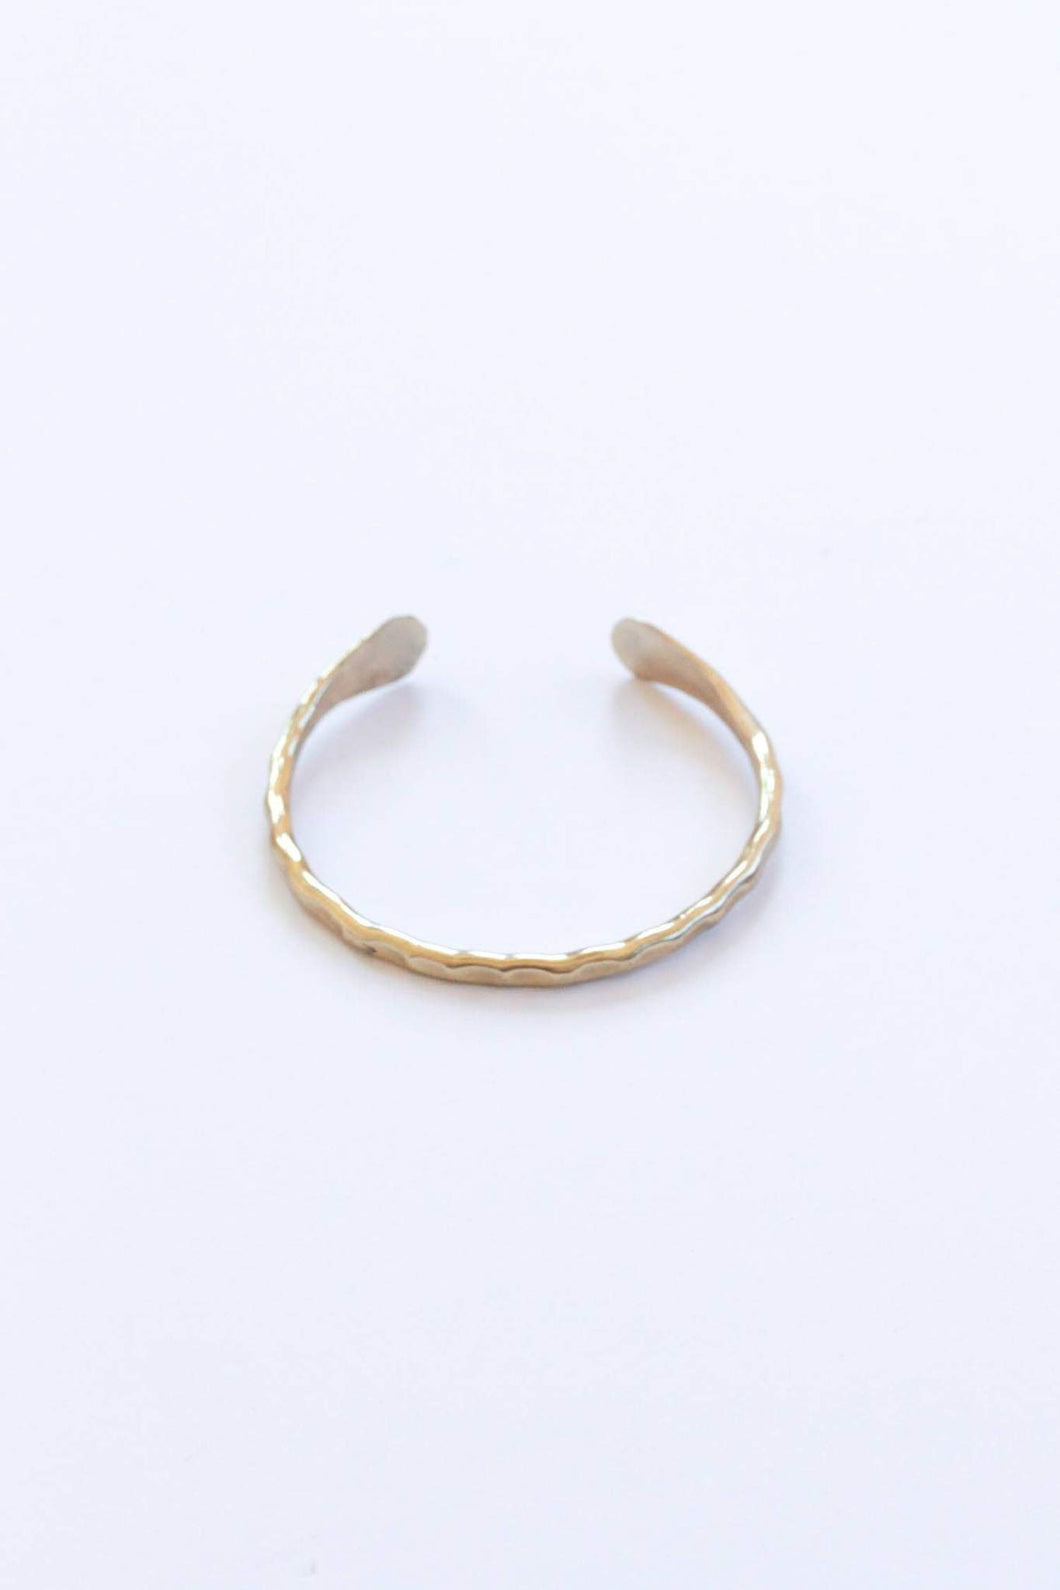 Hammered Cuff Bracelet - Gold